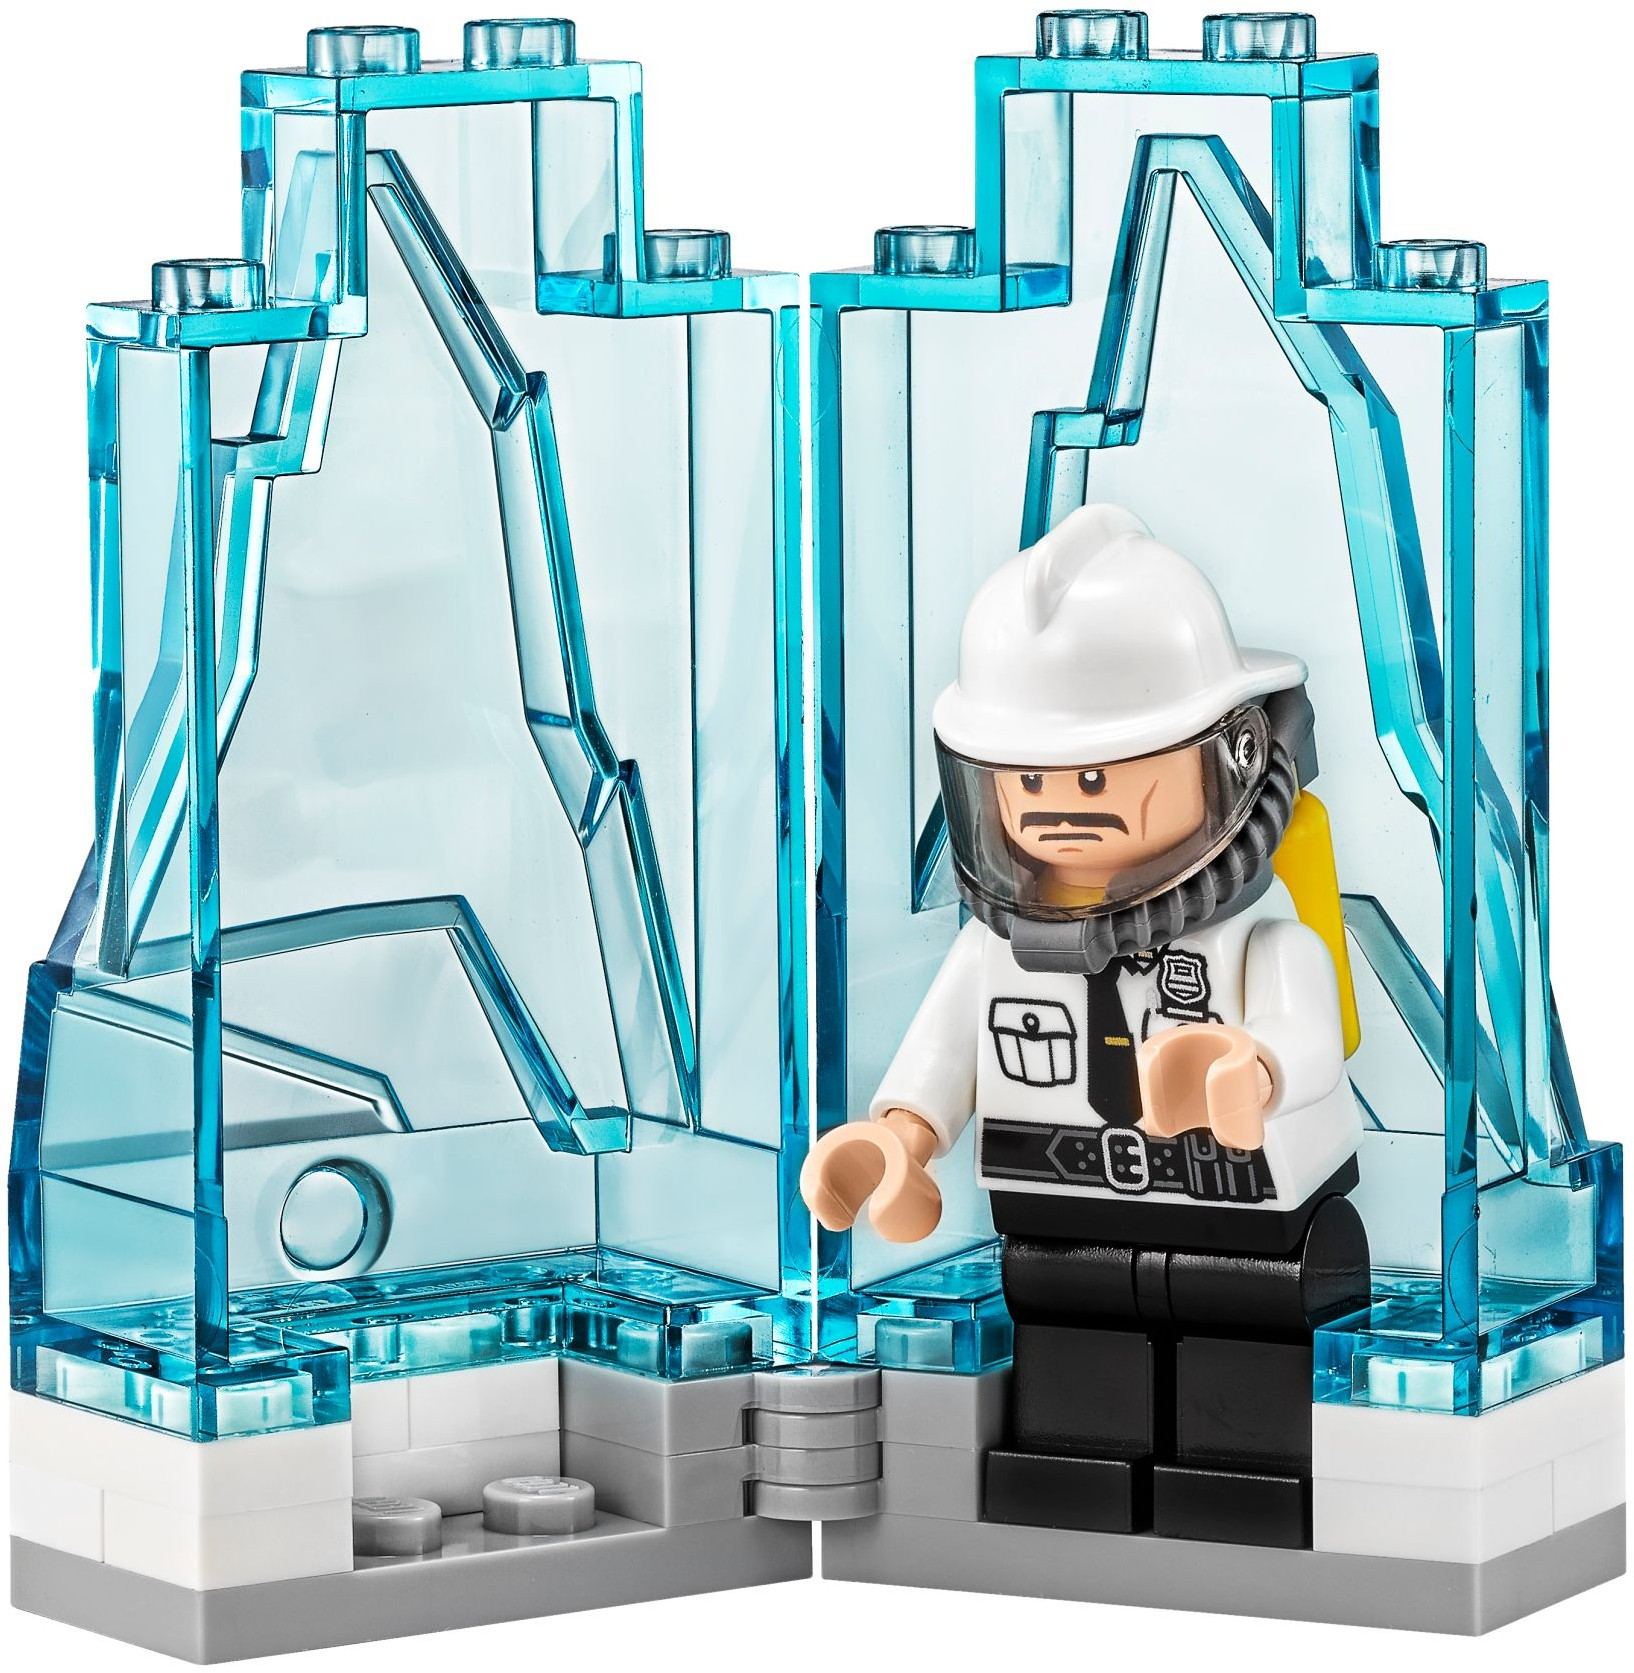 https://i0.wp.com/images.brickset.com/sets/AdditionalImages/70901-1/70901_alt5.jpg